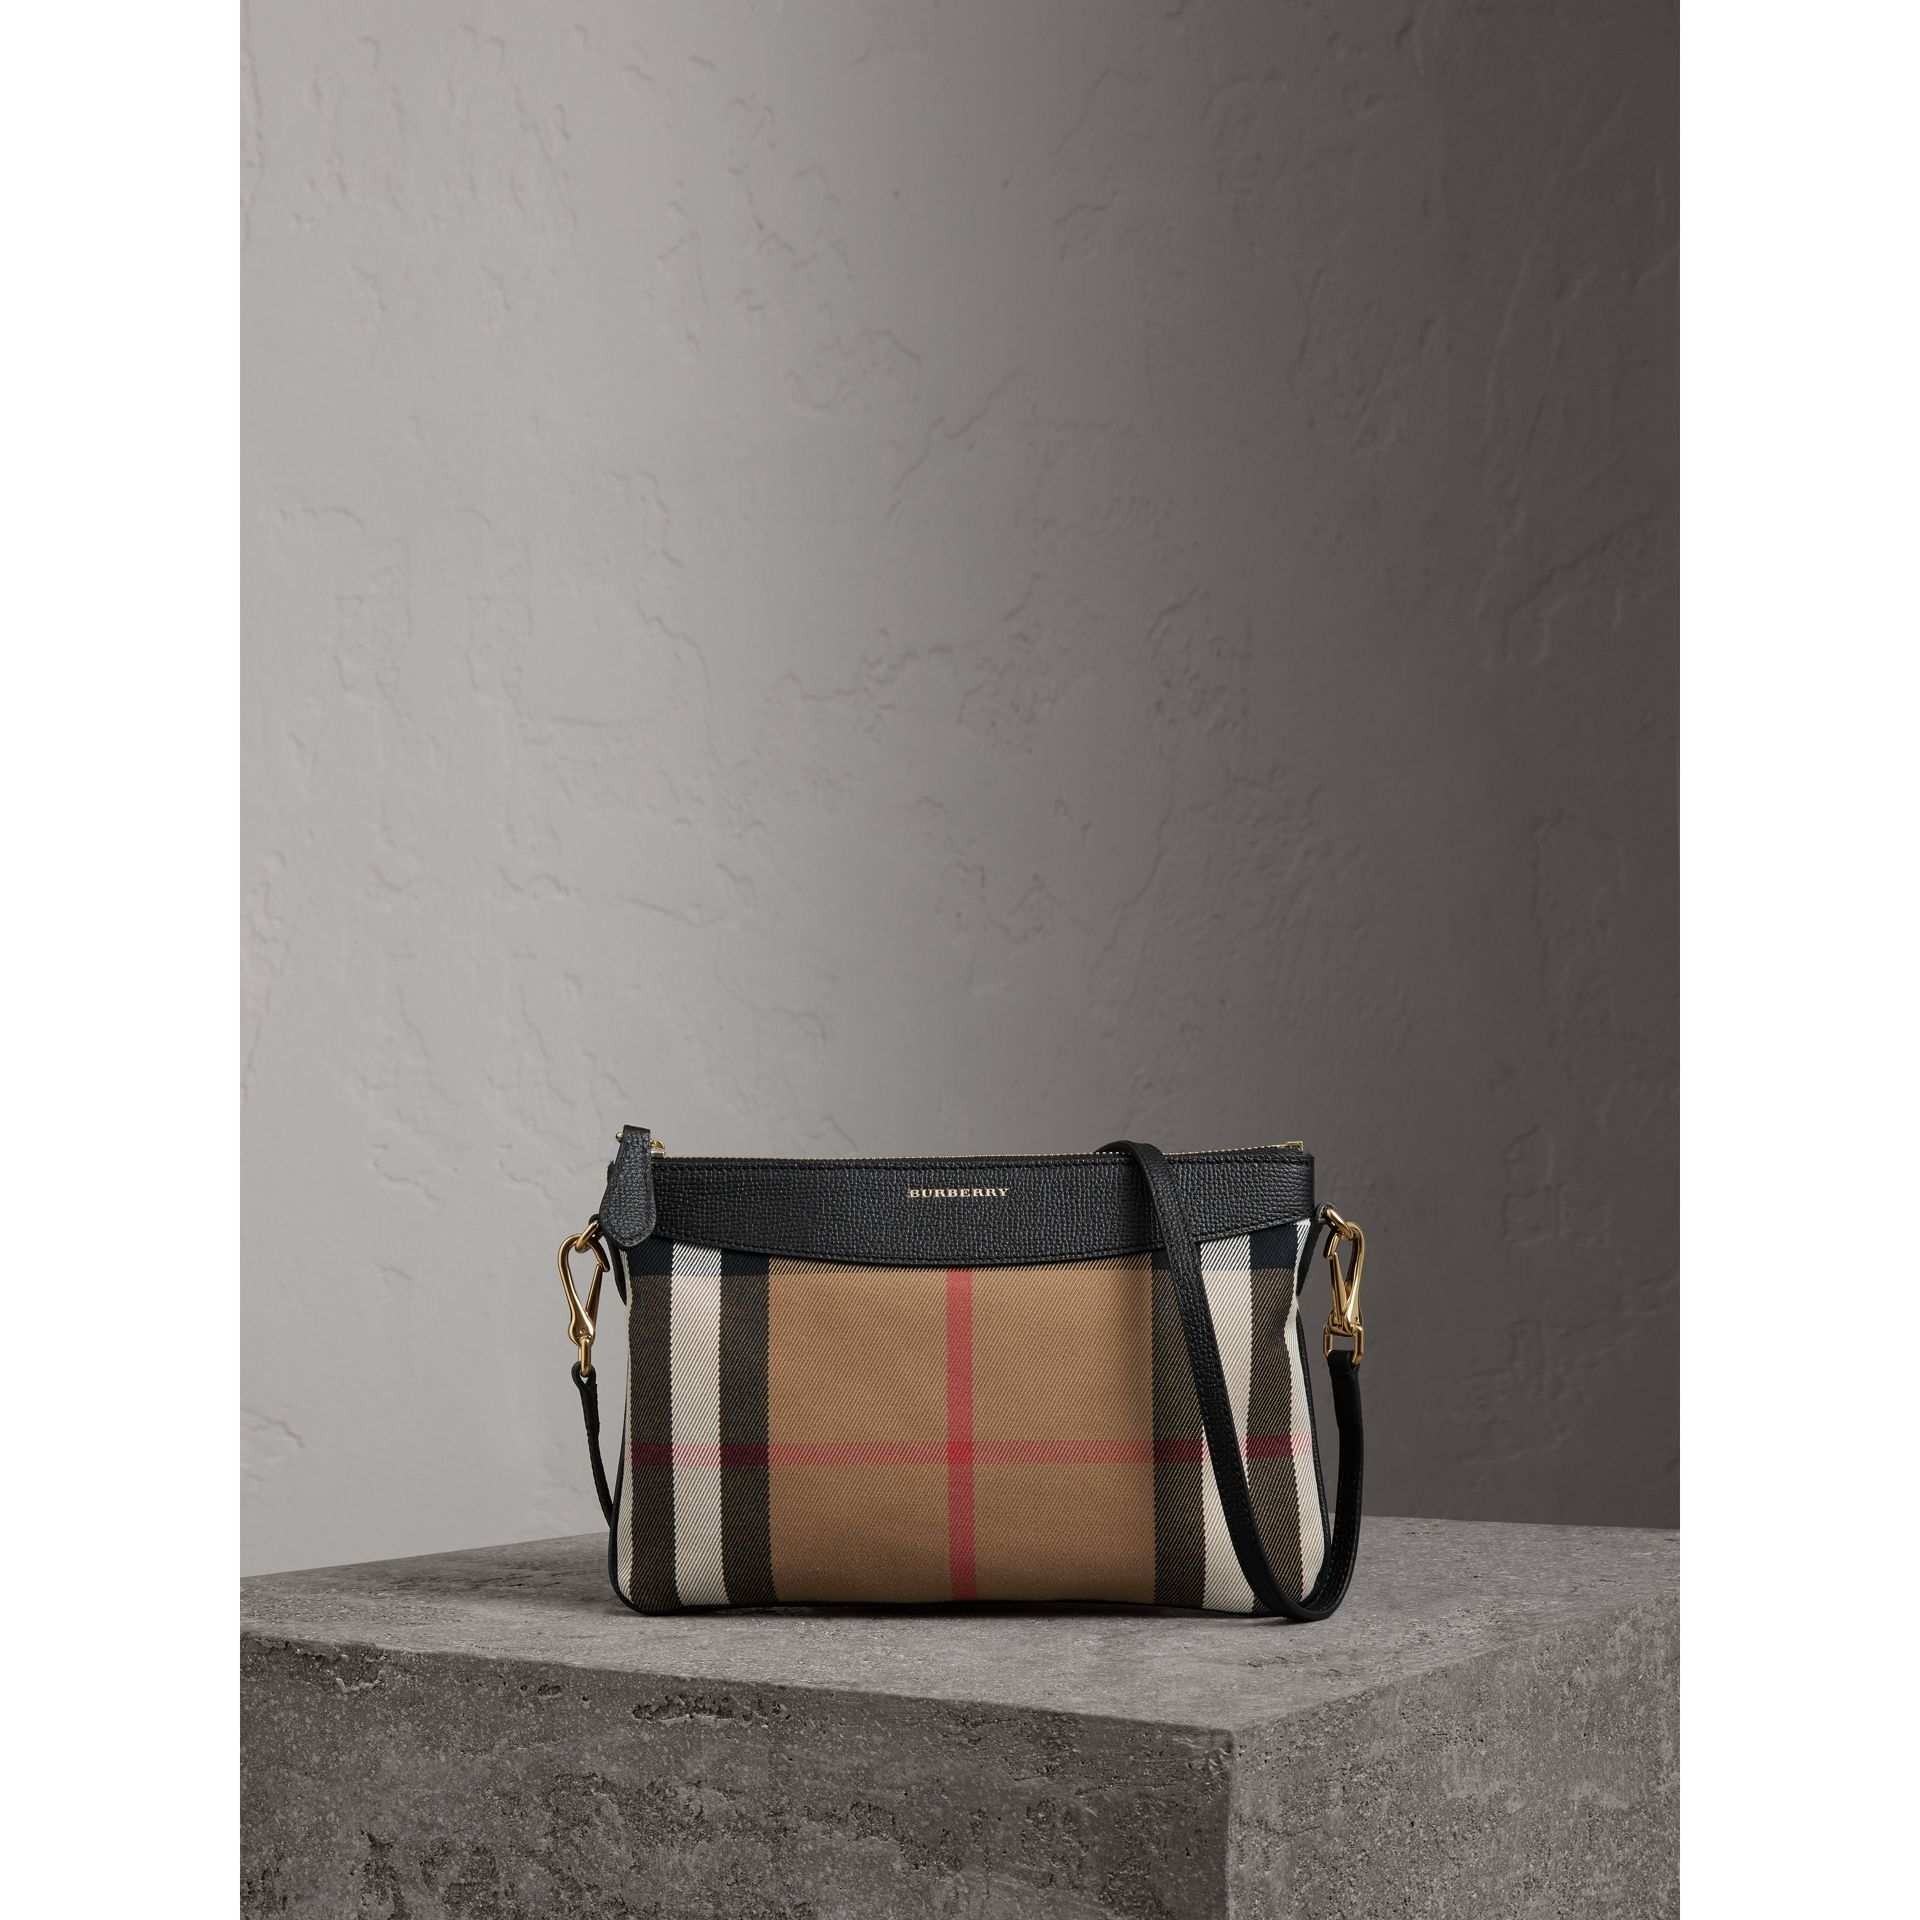 House Check and Leather Clutch Bag in Black - Women | Burberry - gallery image 1